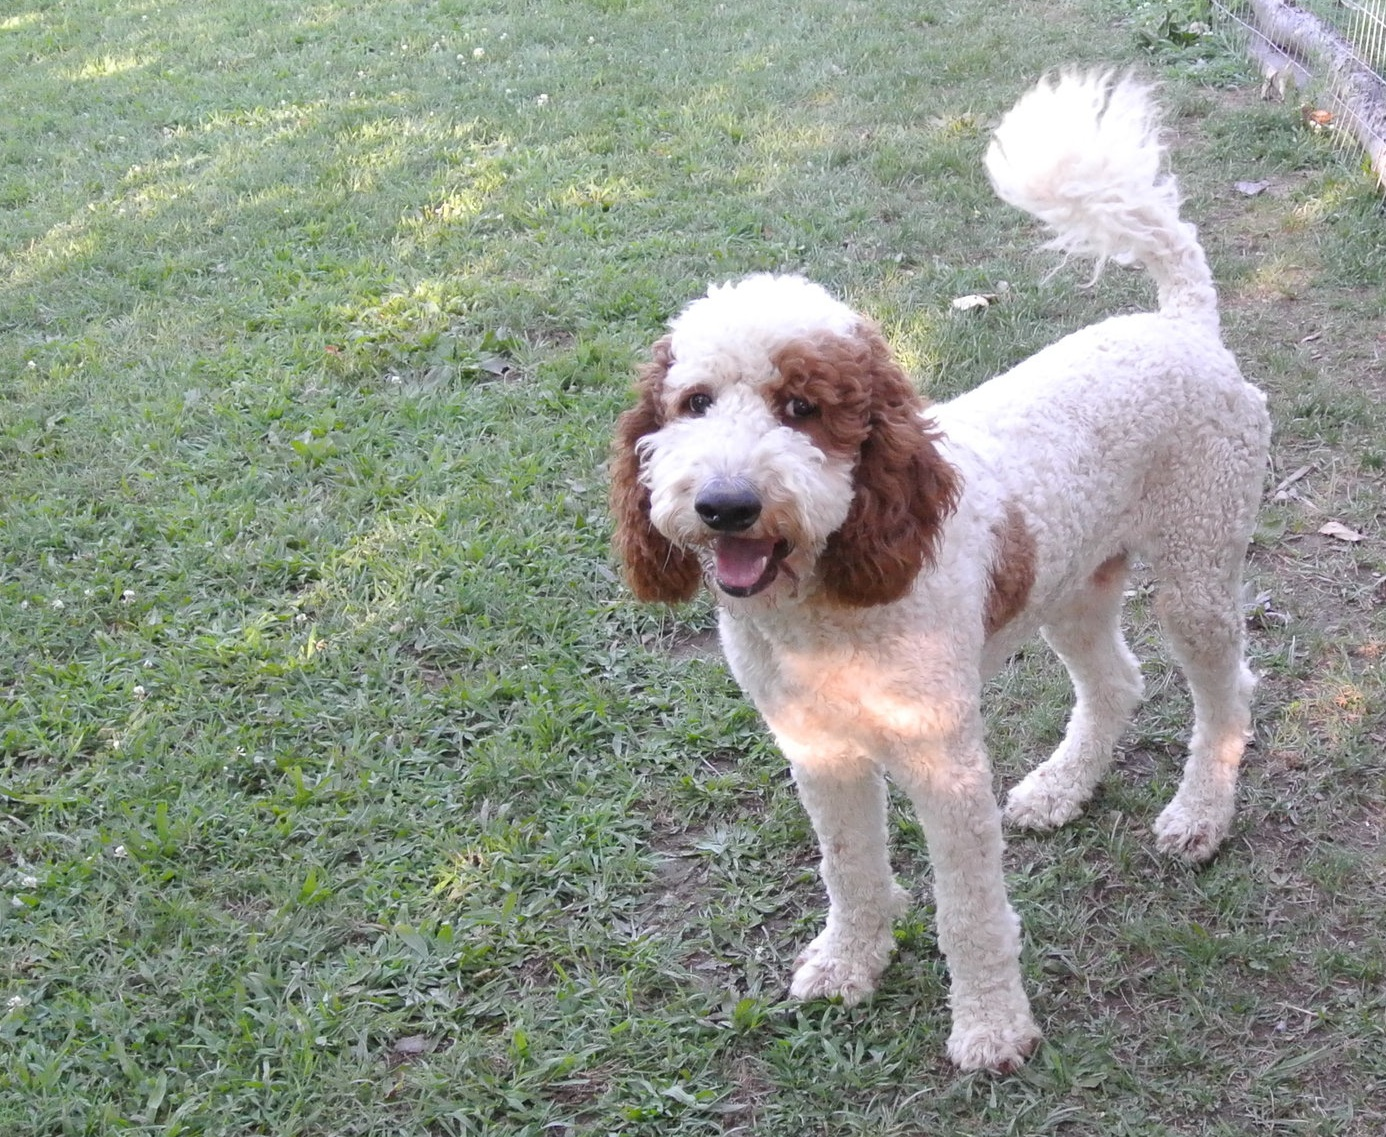 Yankee, the standard Poodle dad